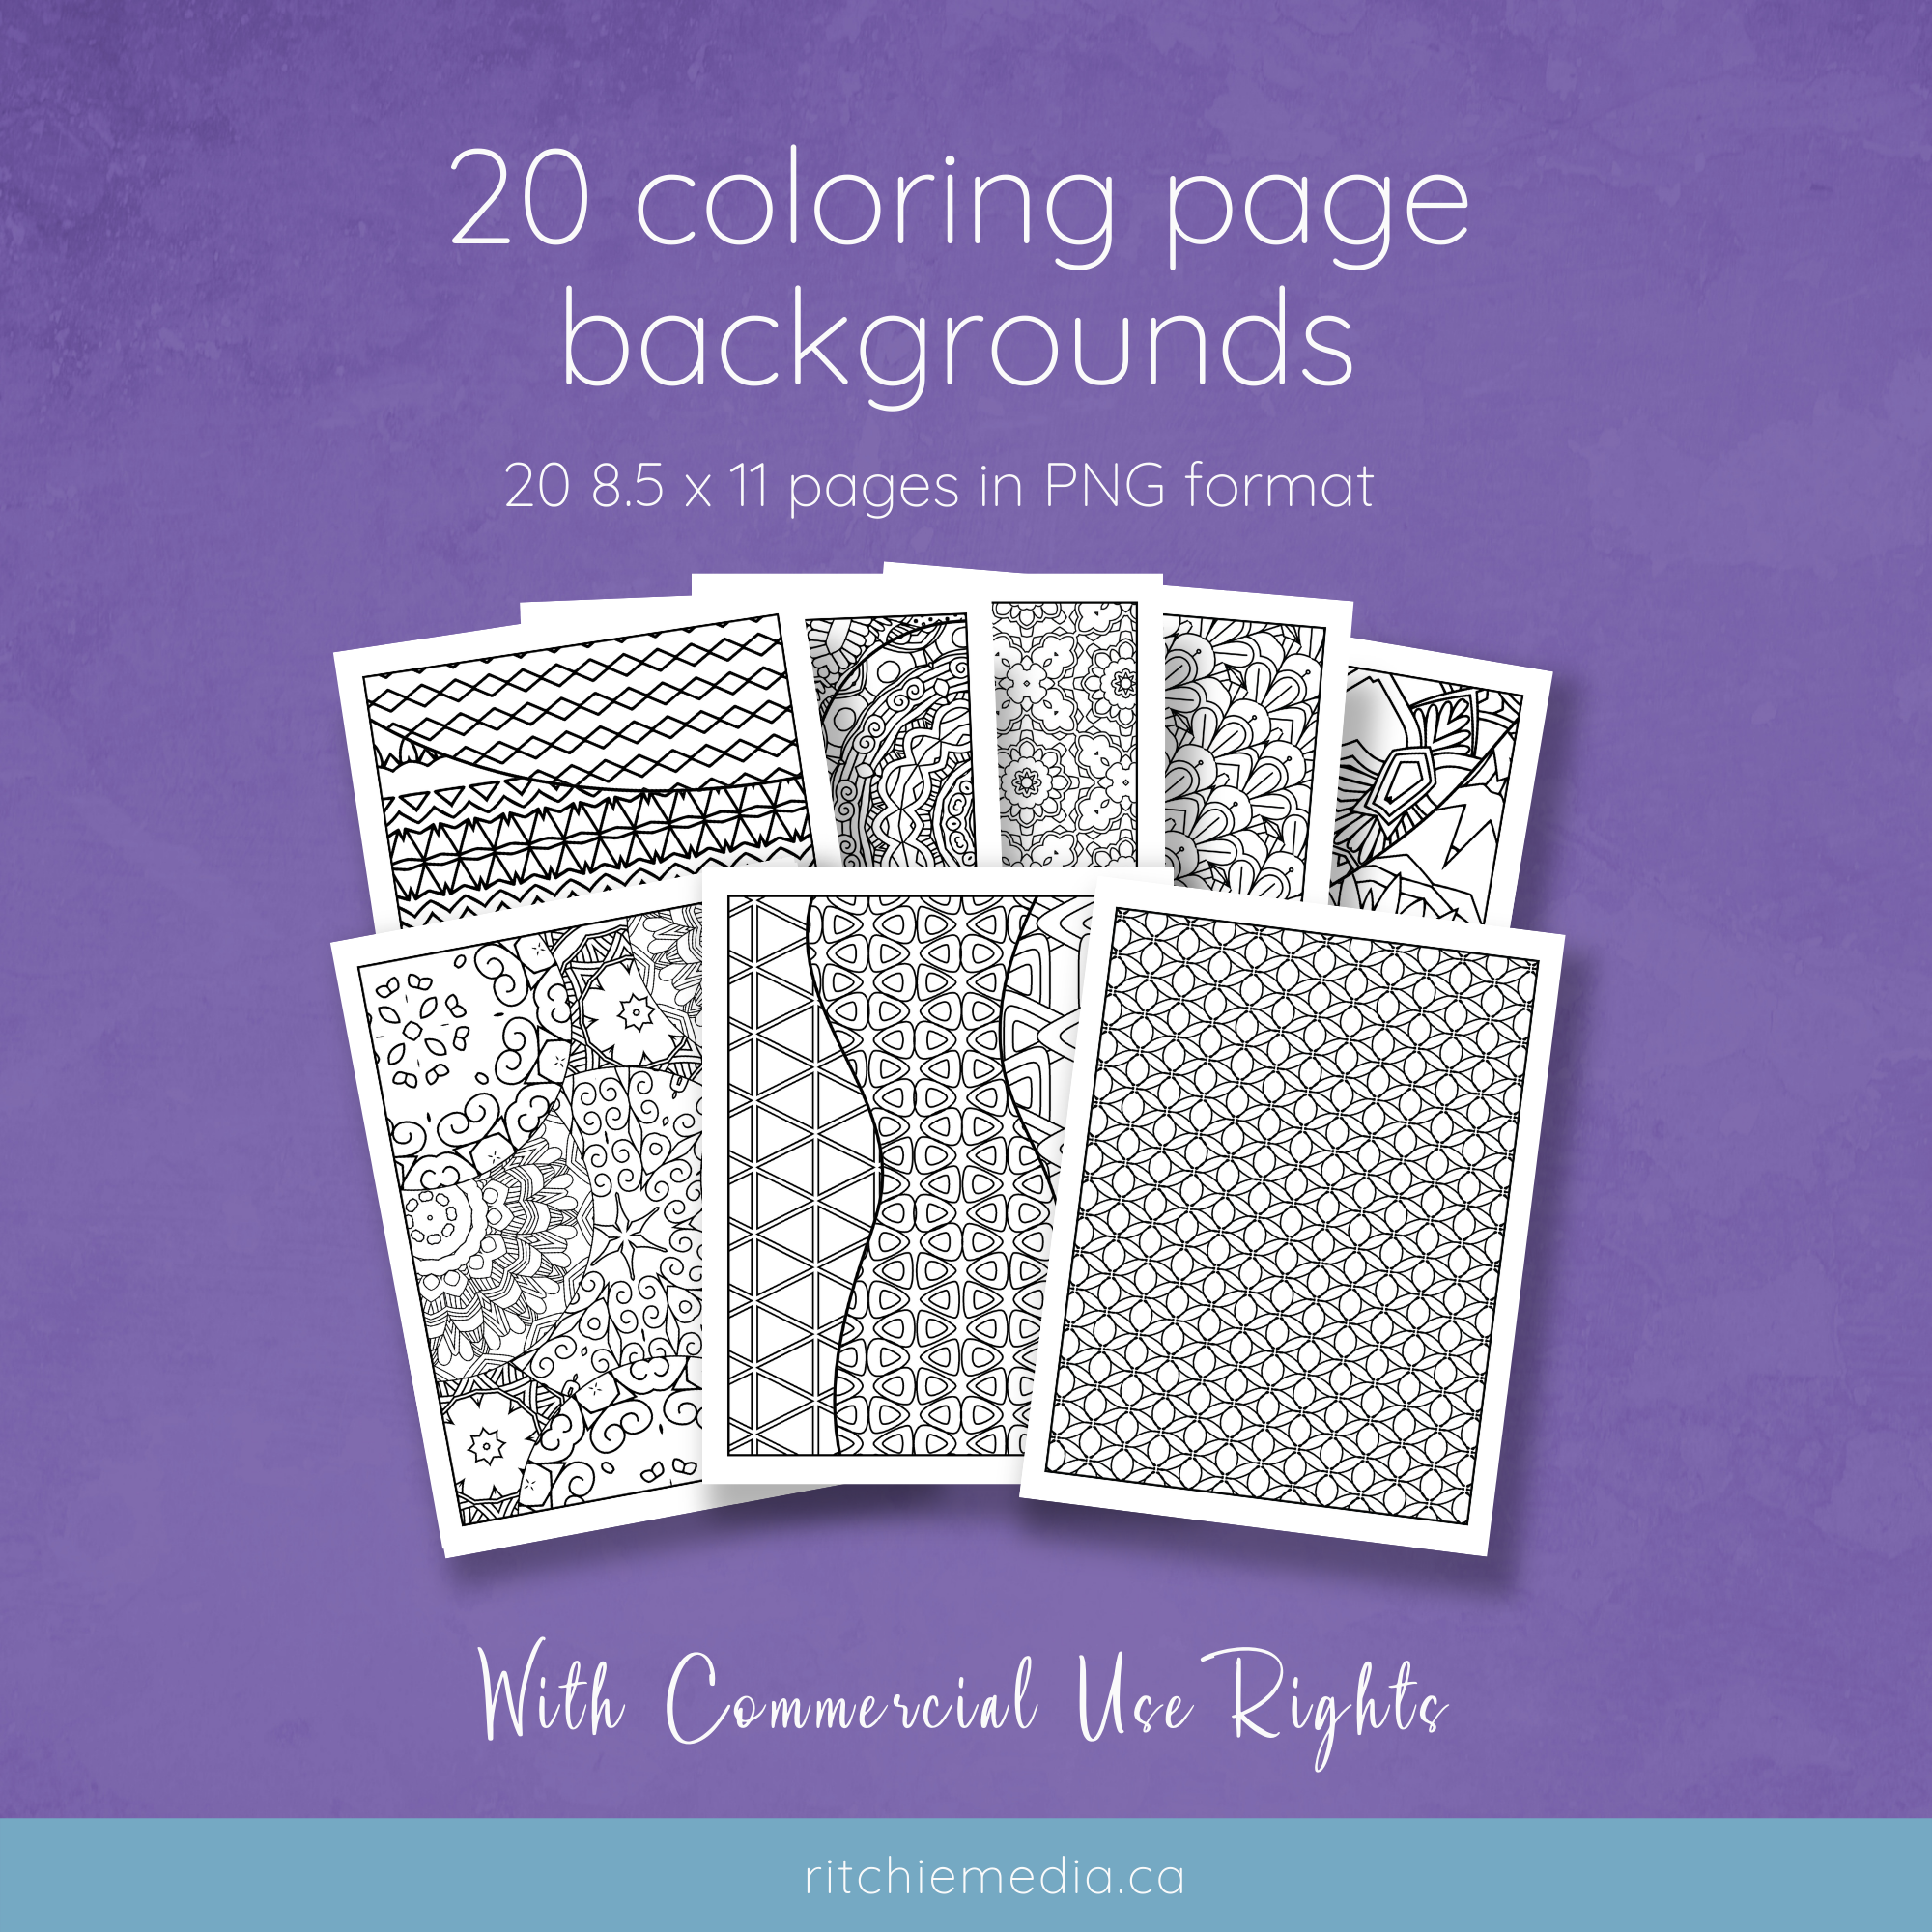 20 coloring page backgrounds mockup